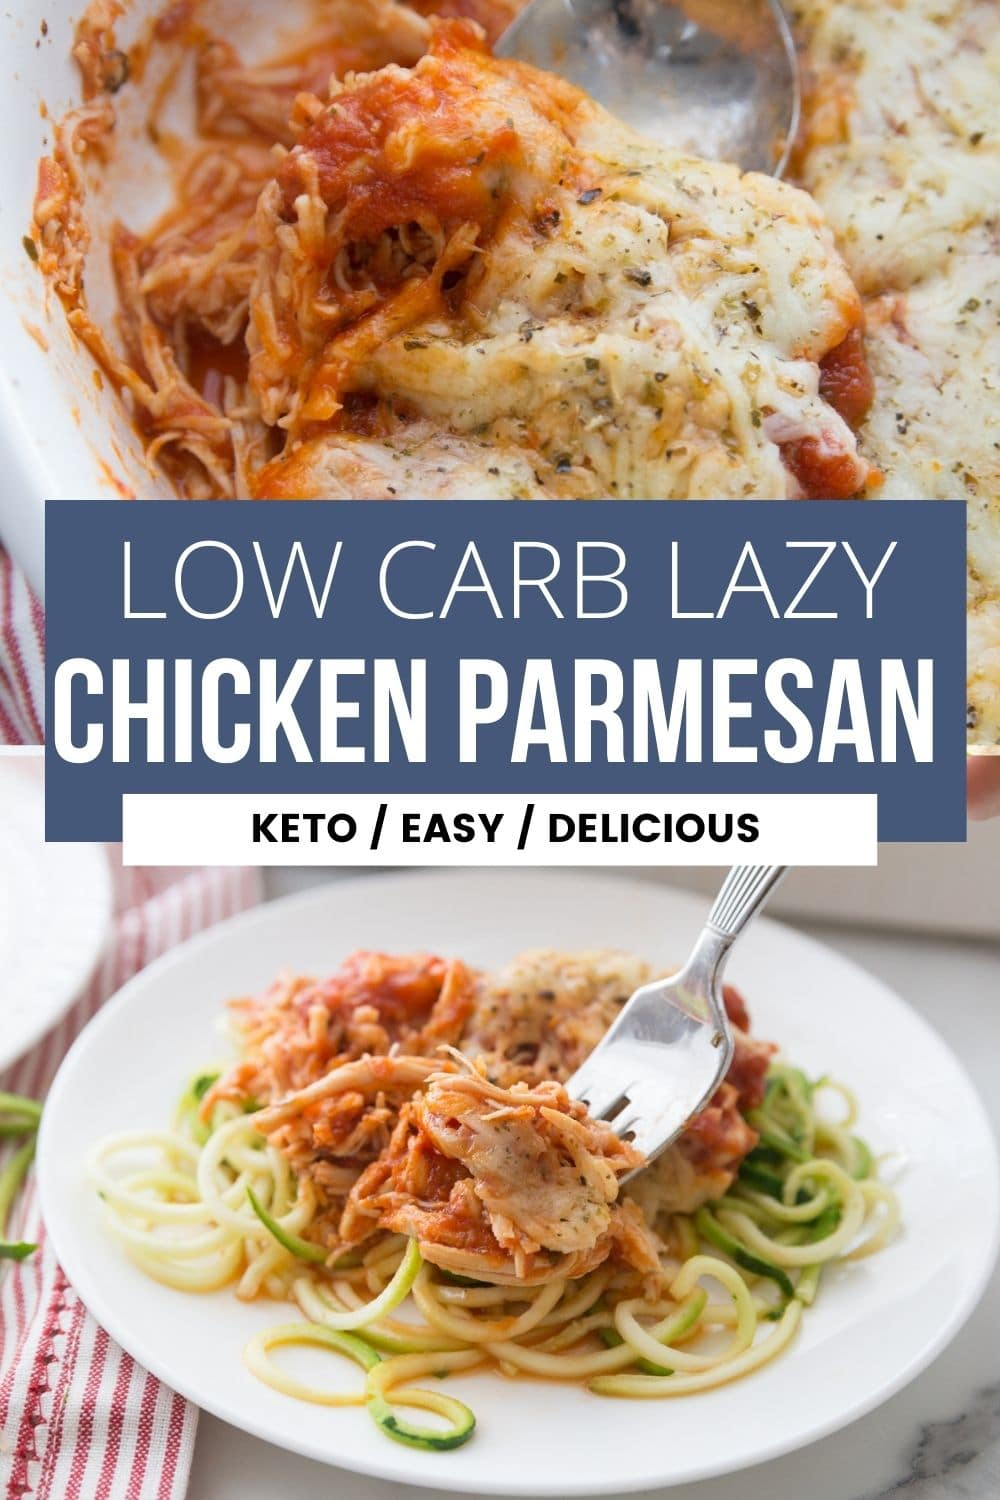 Low carb lazy chicken parmesan collage image with a casserole dish and plated